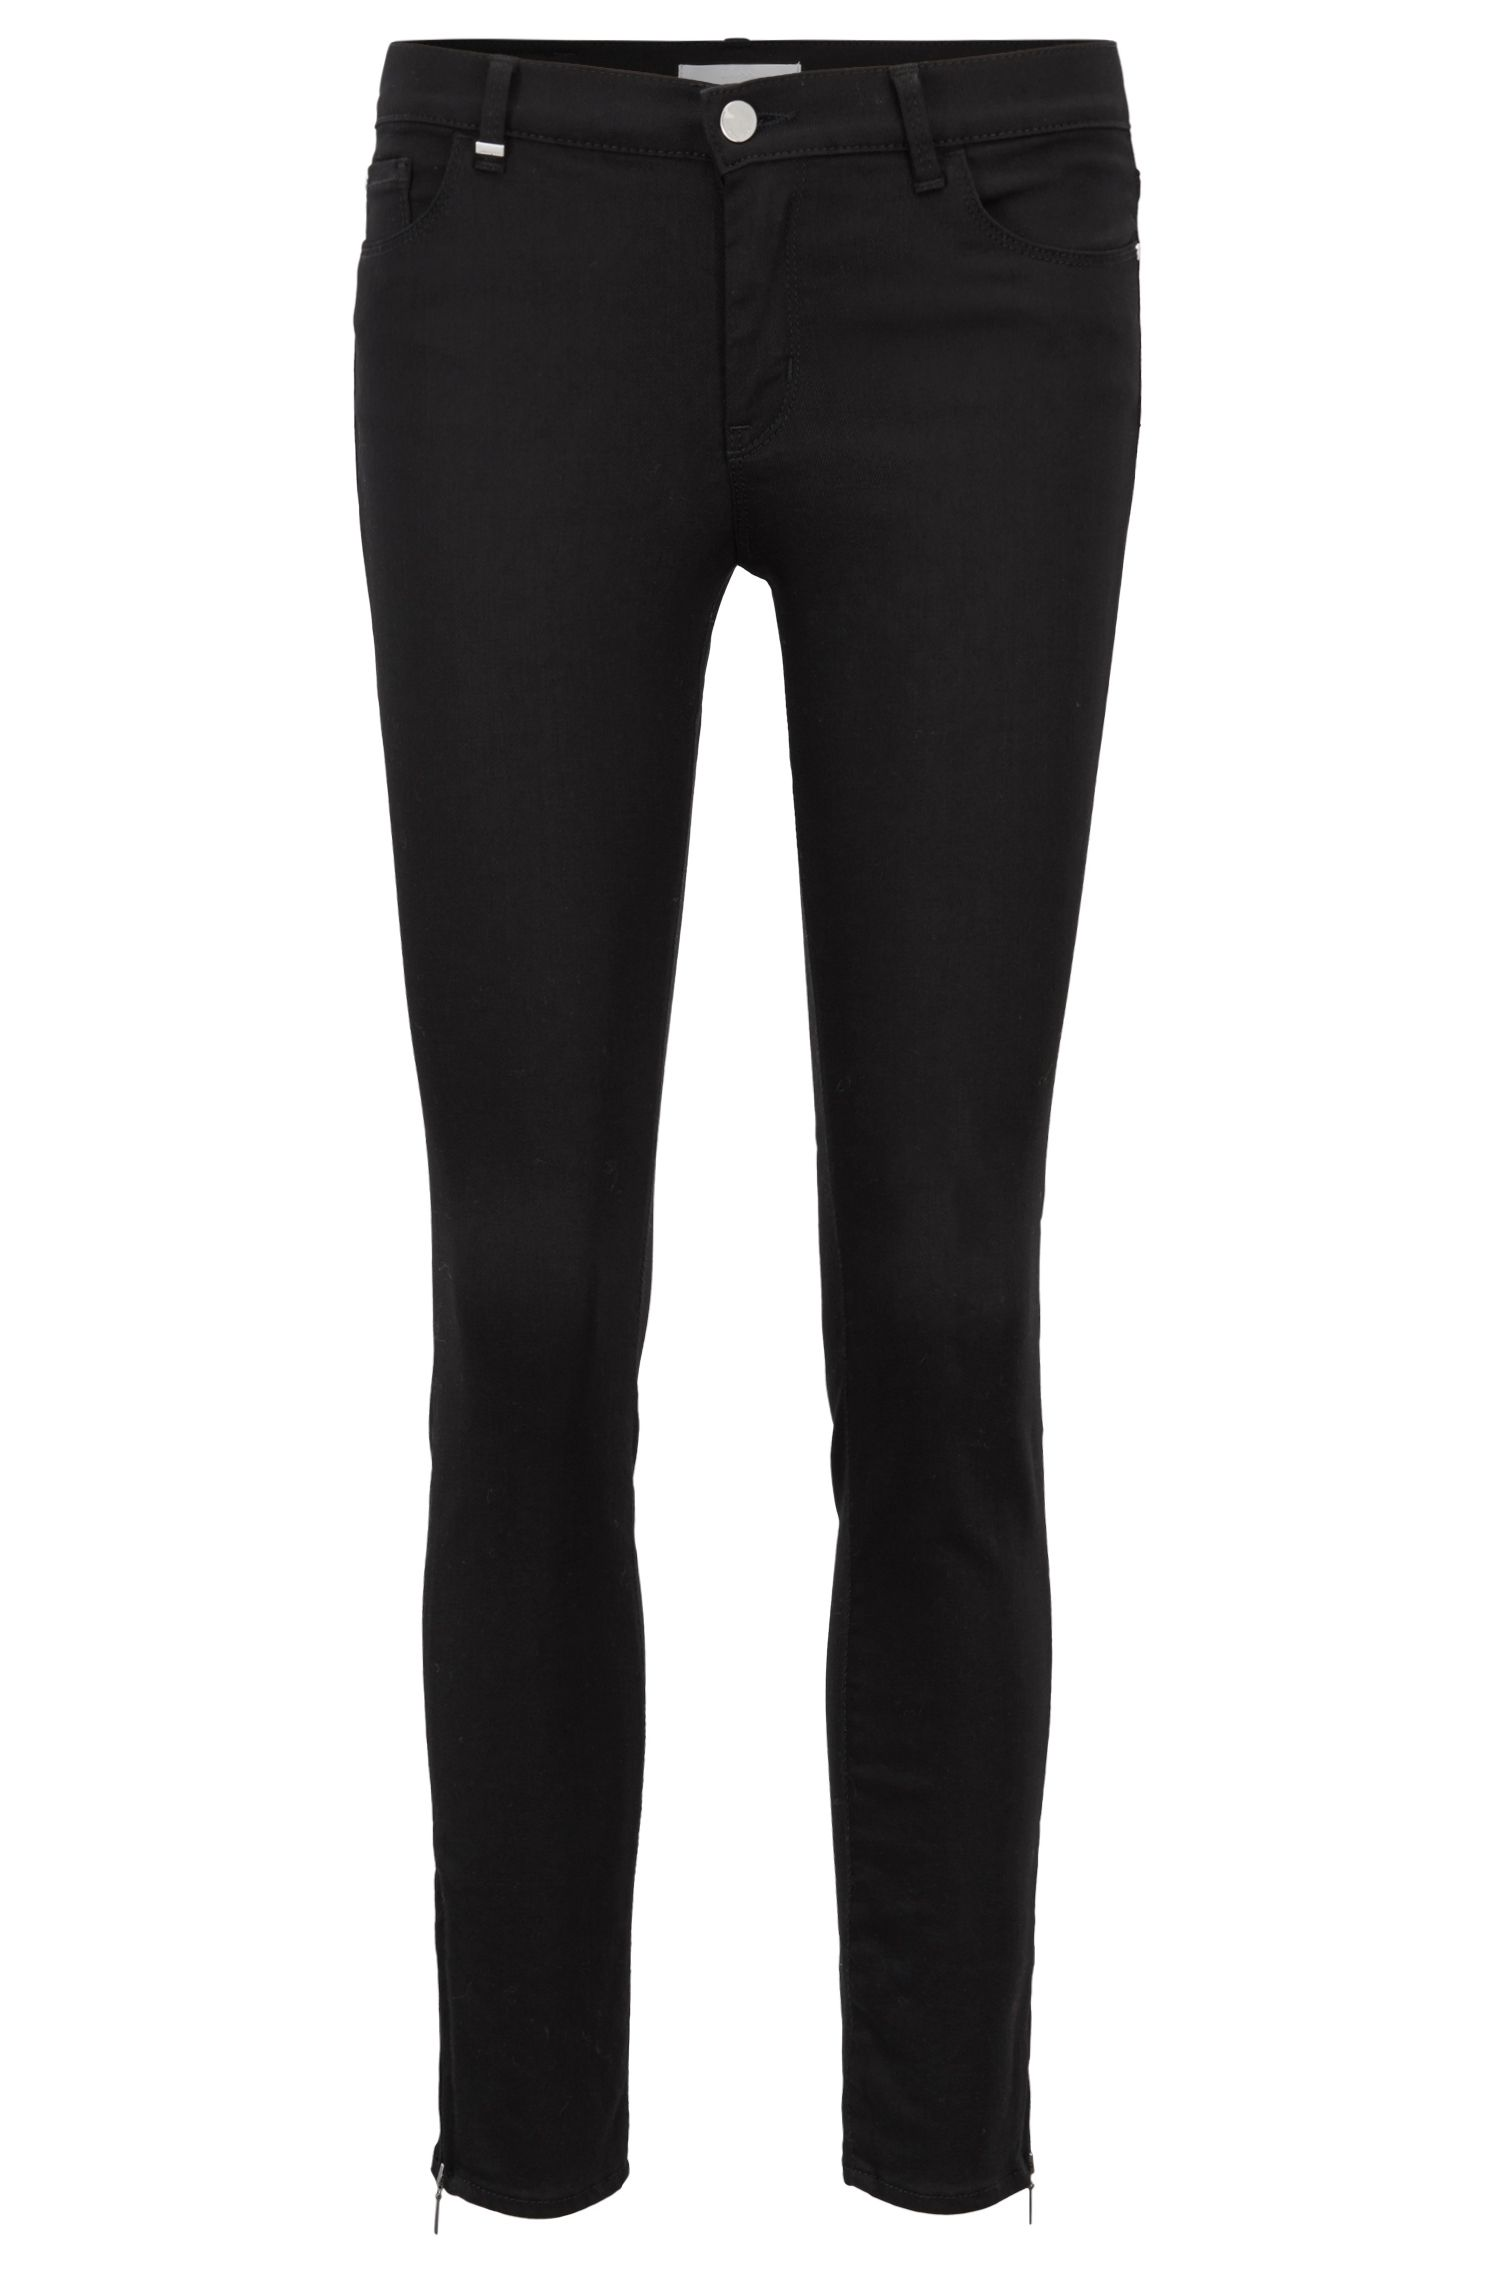 Slim-fit cropped jeans in Stay Black stretch denim, Black